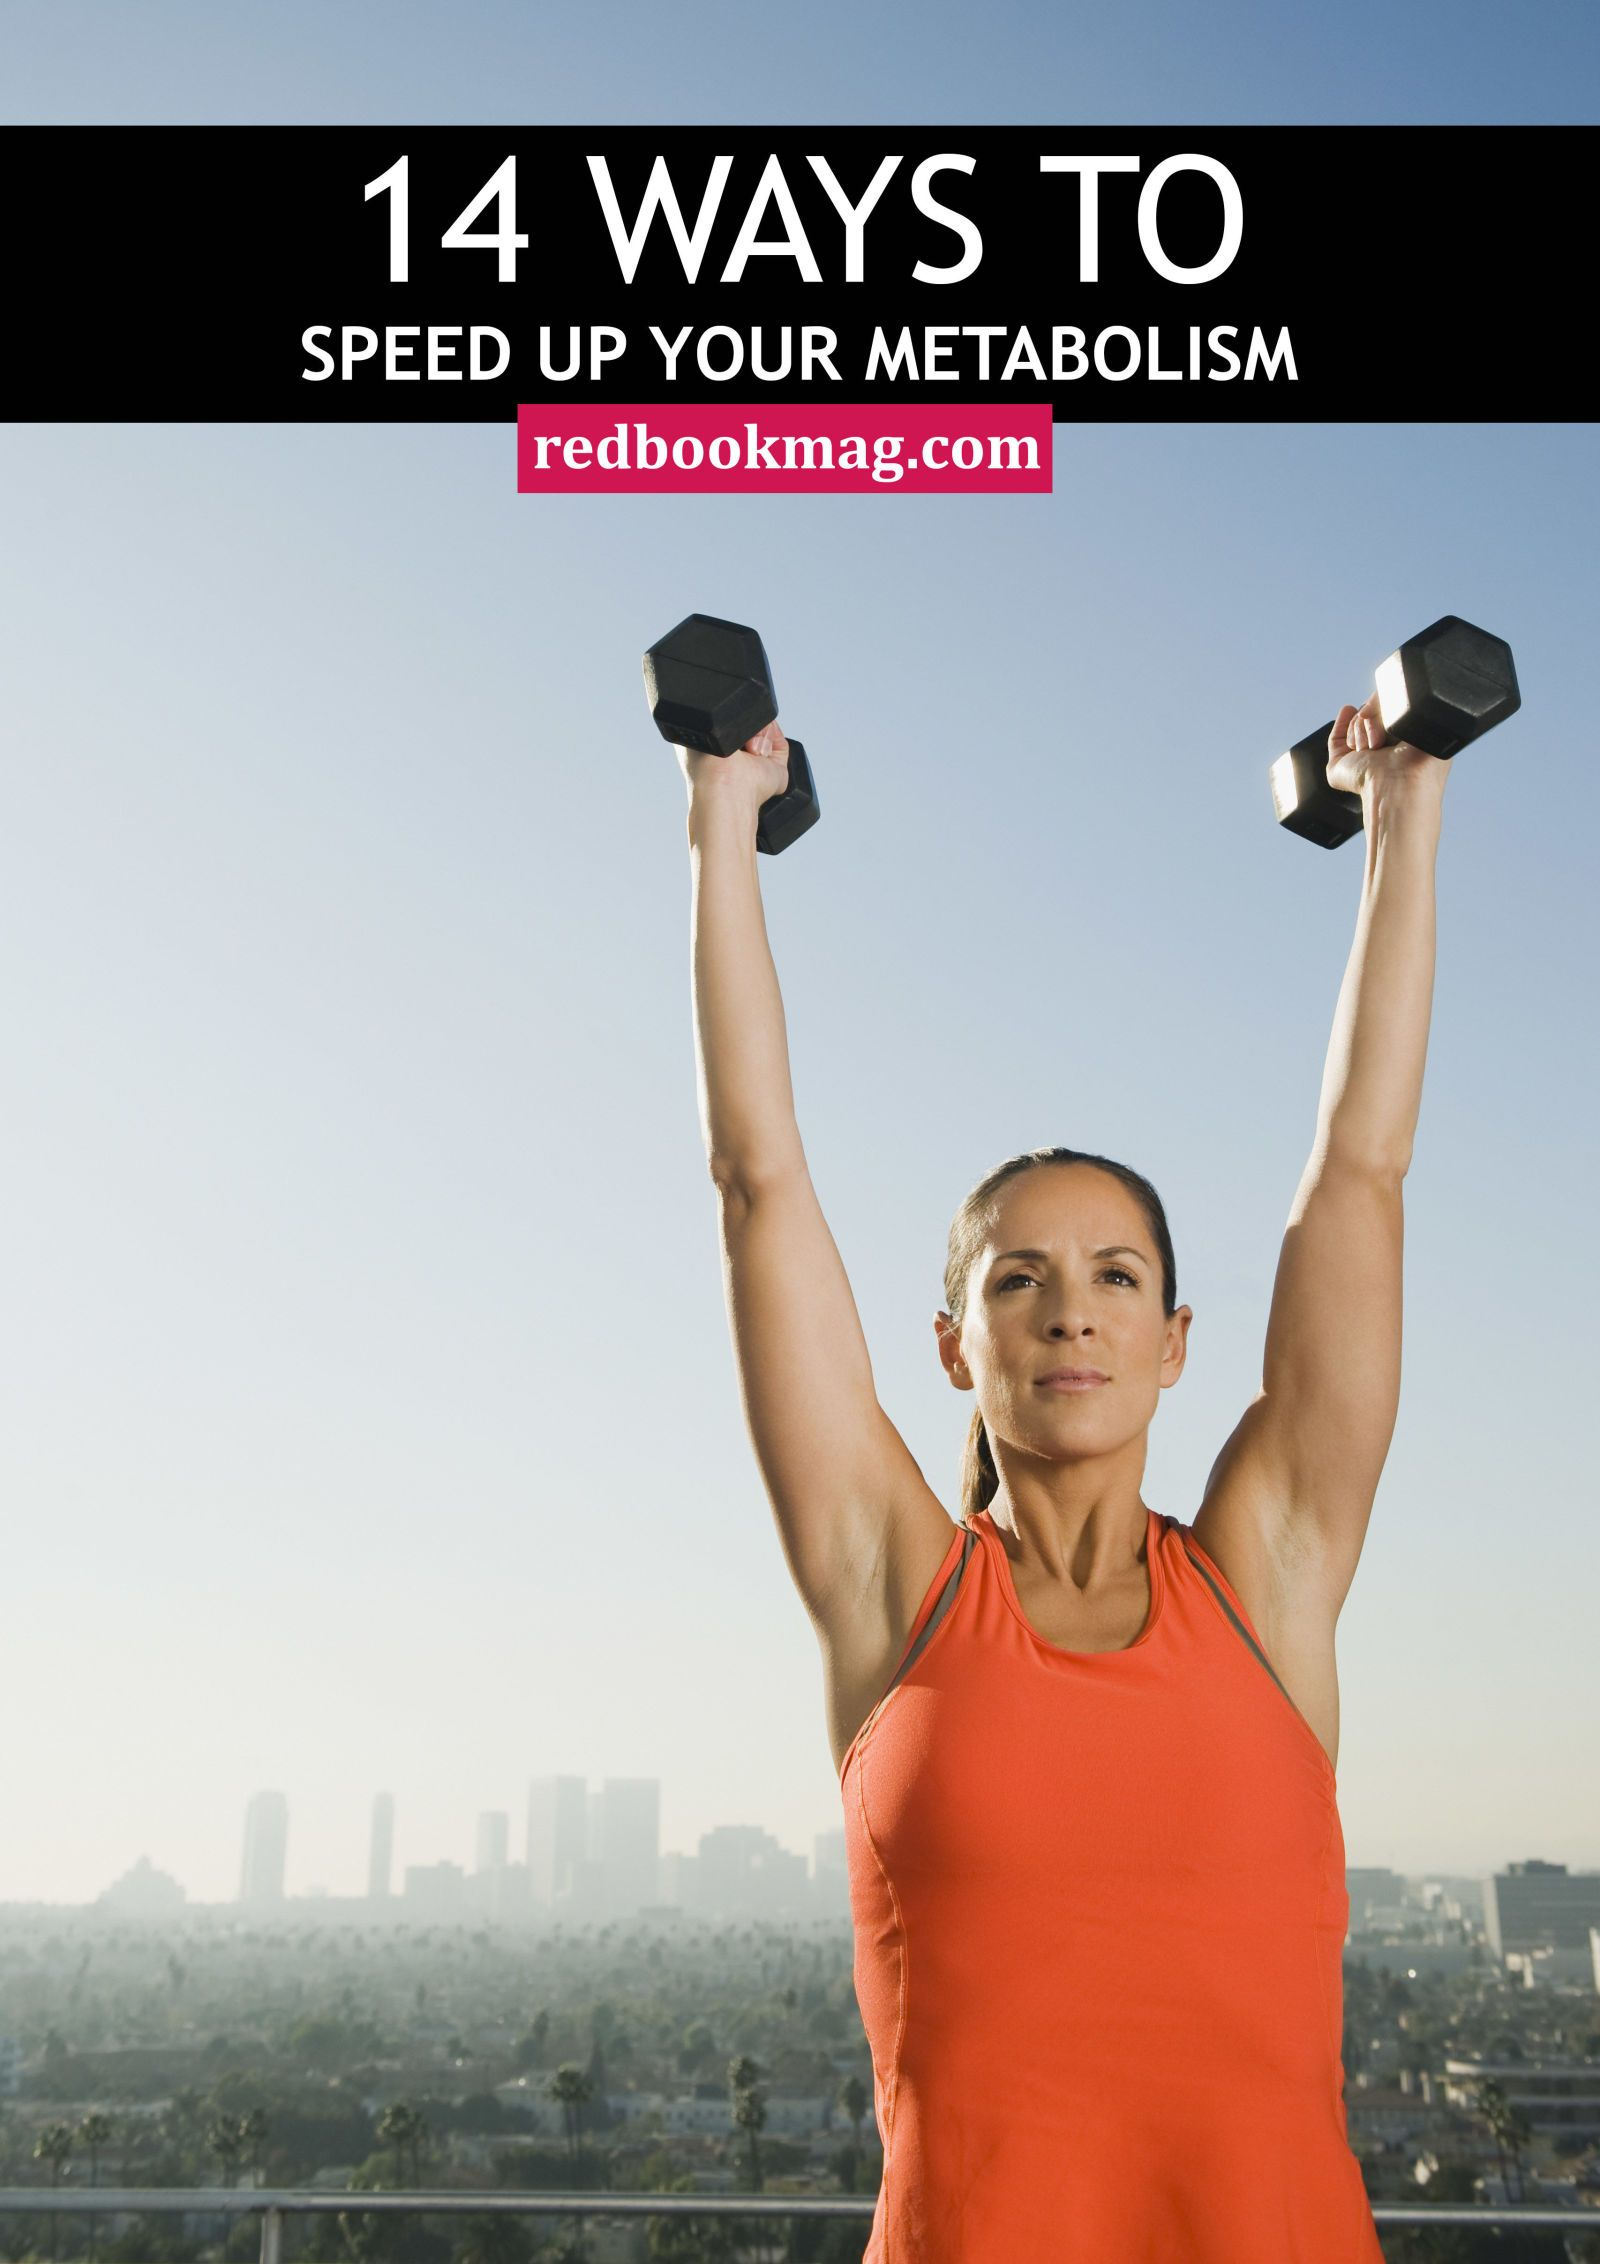 23 Ridiculously Easy Ways to Increase Metabolism